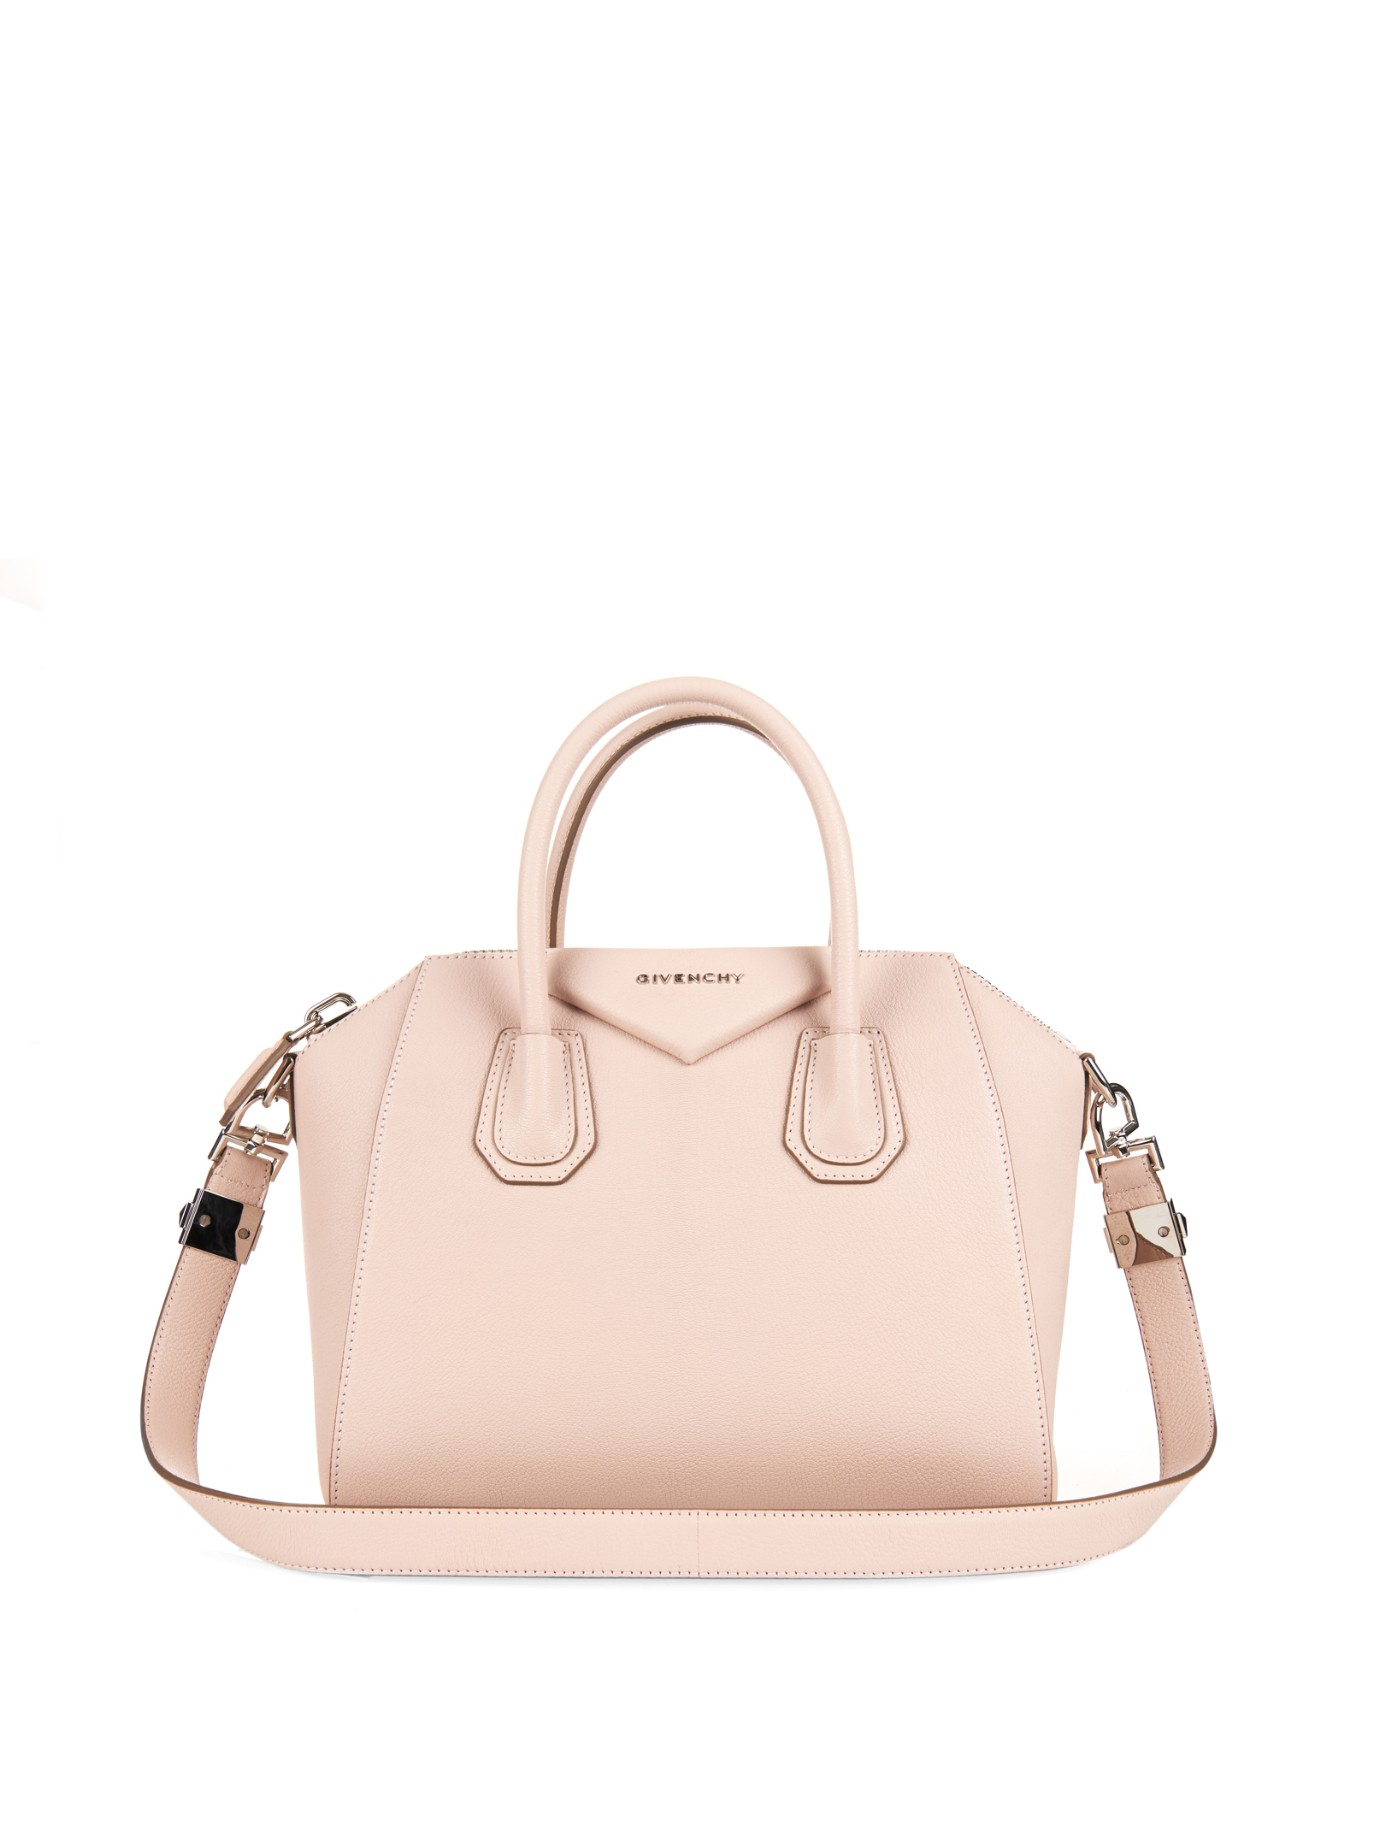 d5122e2f5b1 Lyst - Givenchy Antigona Small Sugar-leather Tote in Pink